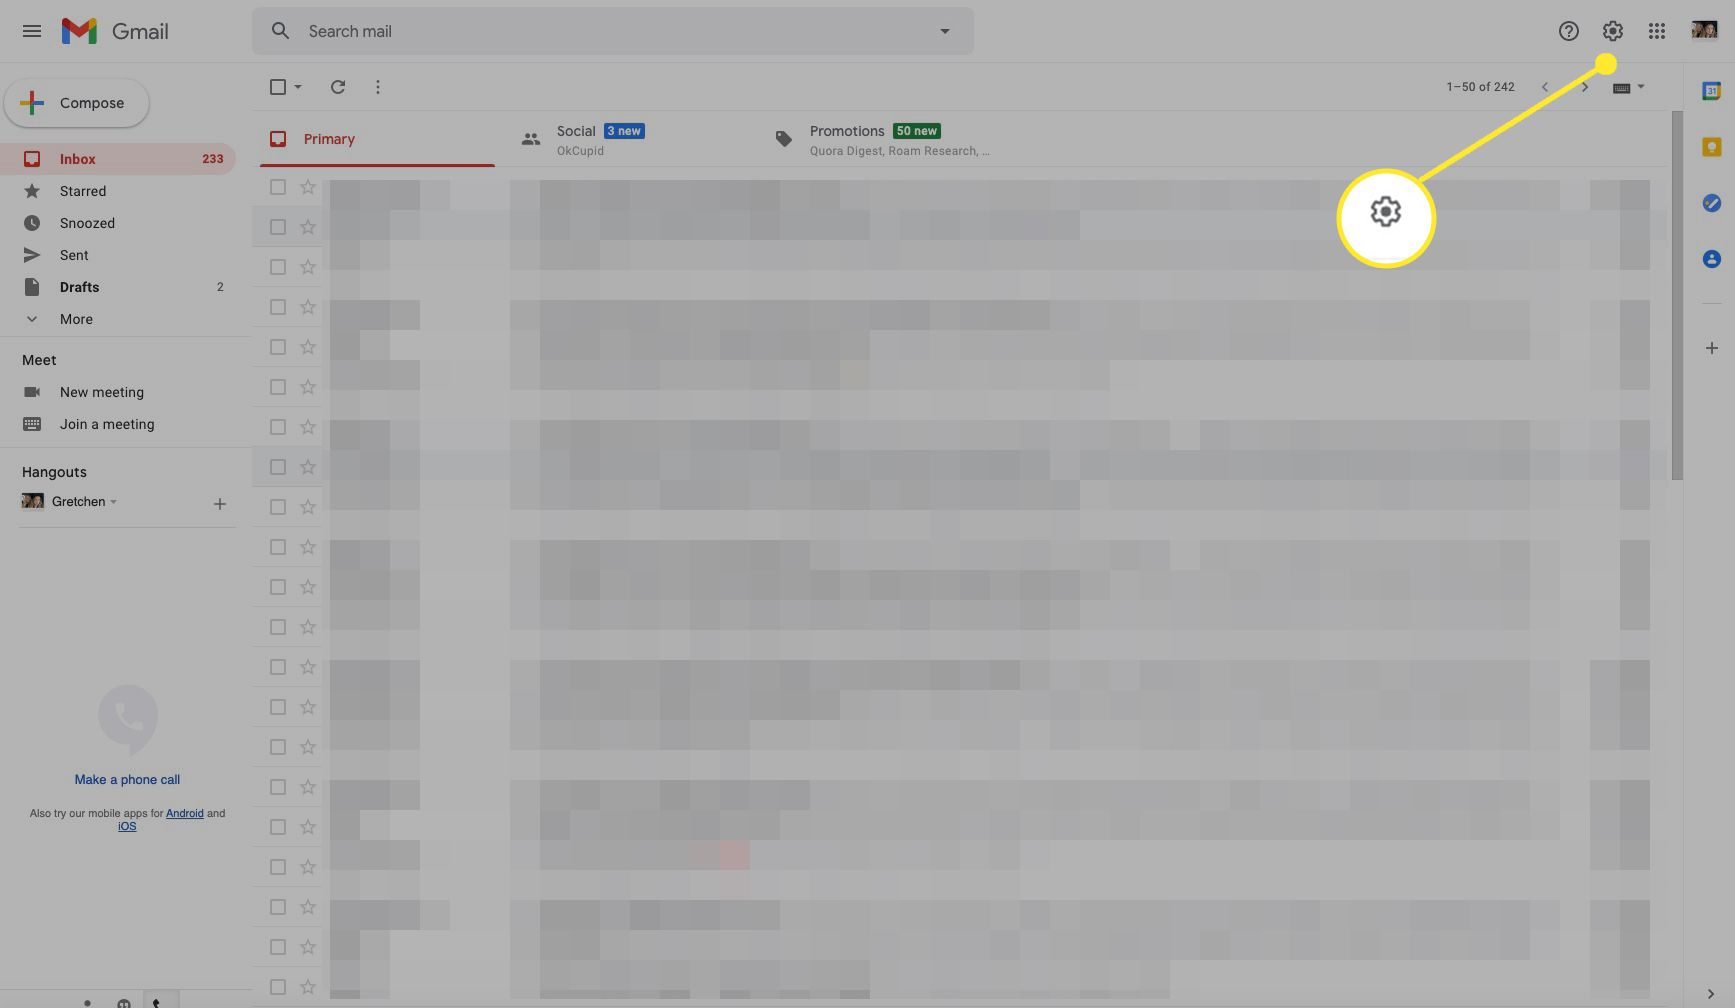 Gmail inbox screen with settings annotated